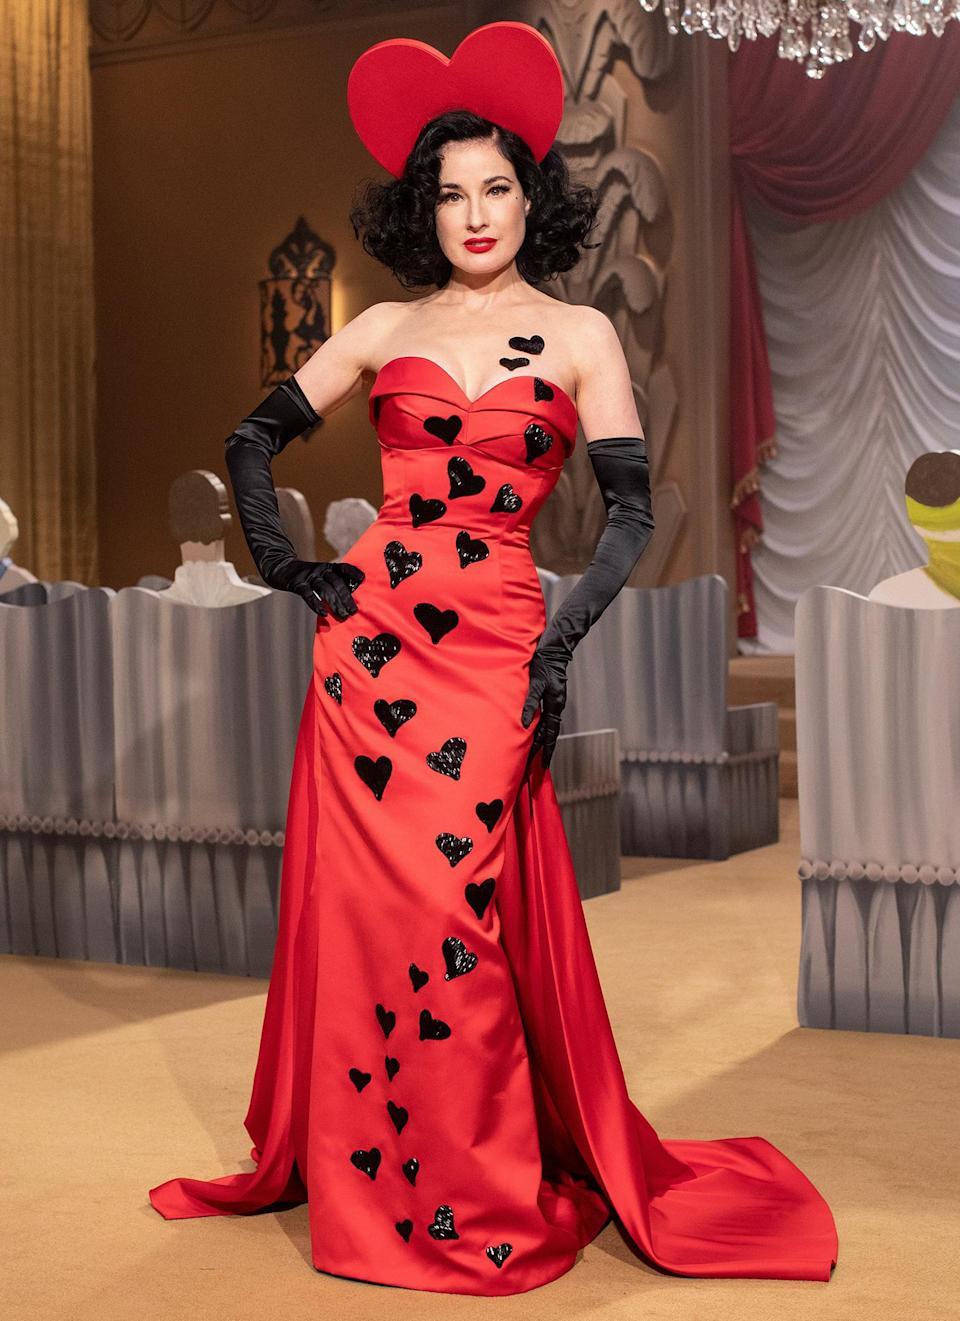 <p>Dita Von Teese wows in a red gown and a heart headpiece at the Milan Fashion Week Moschino fashion show on Thursday in Milan.</p>